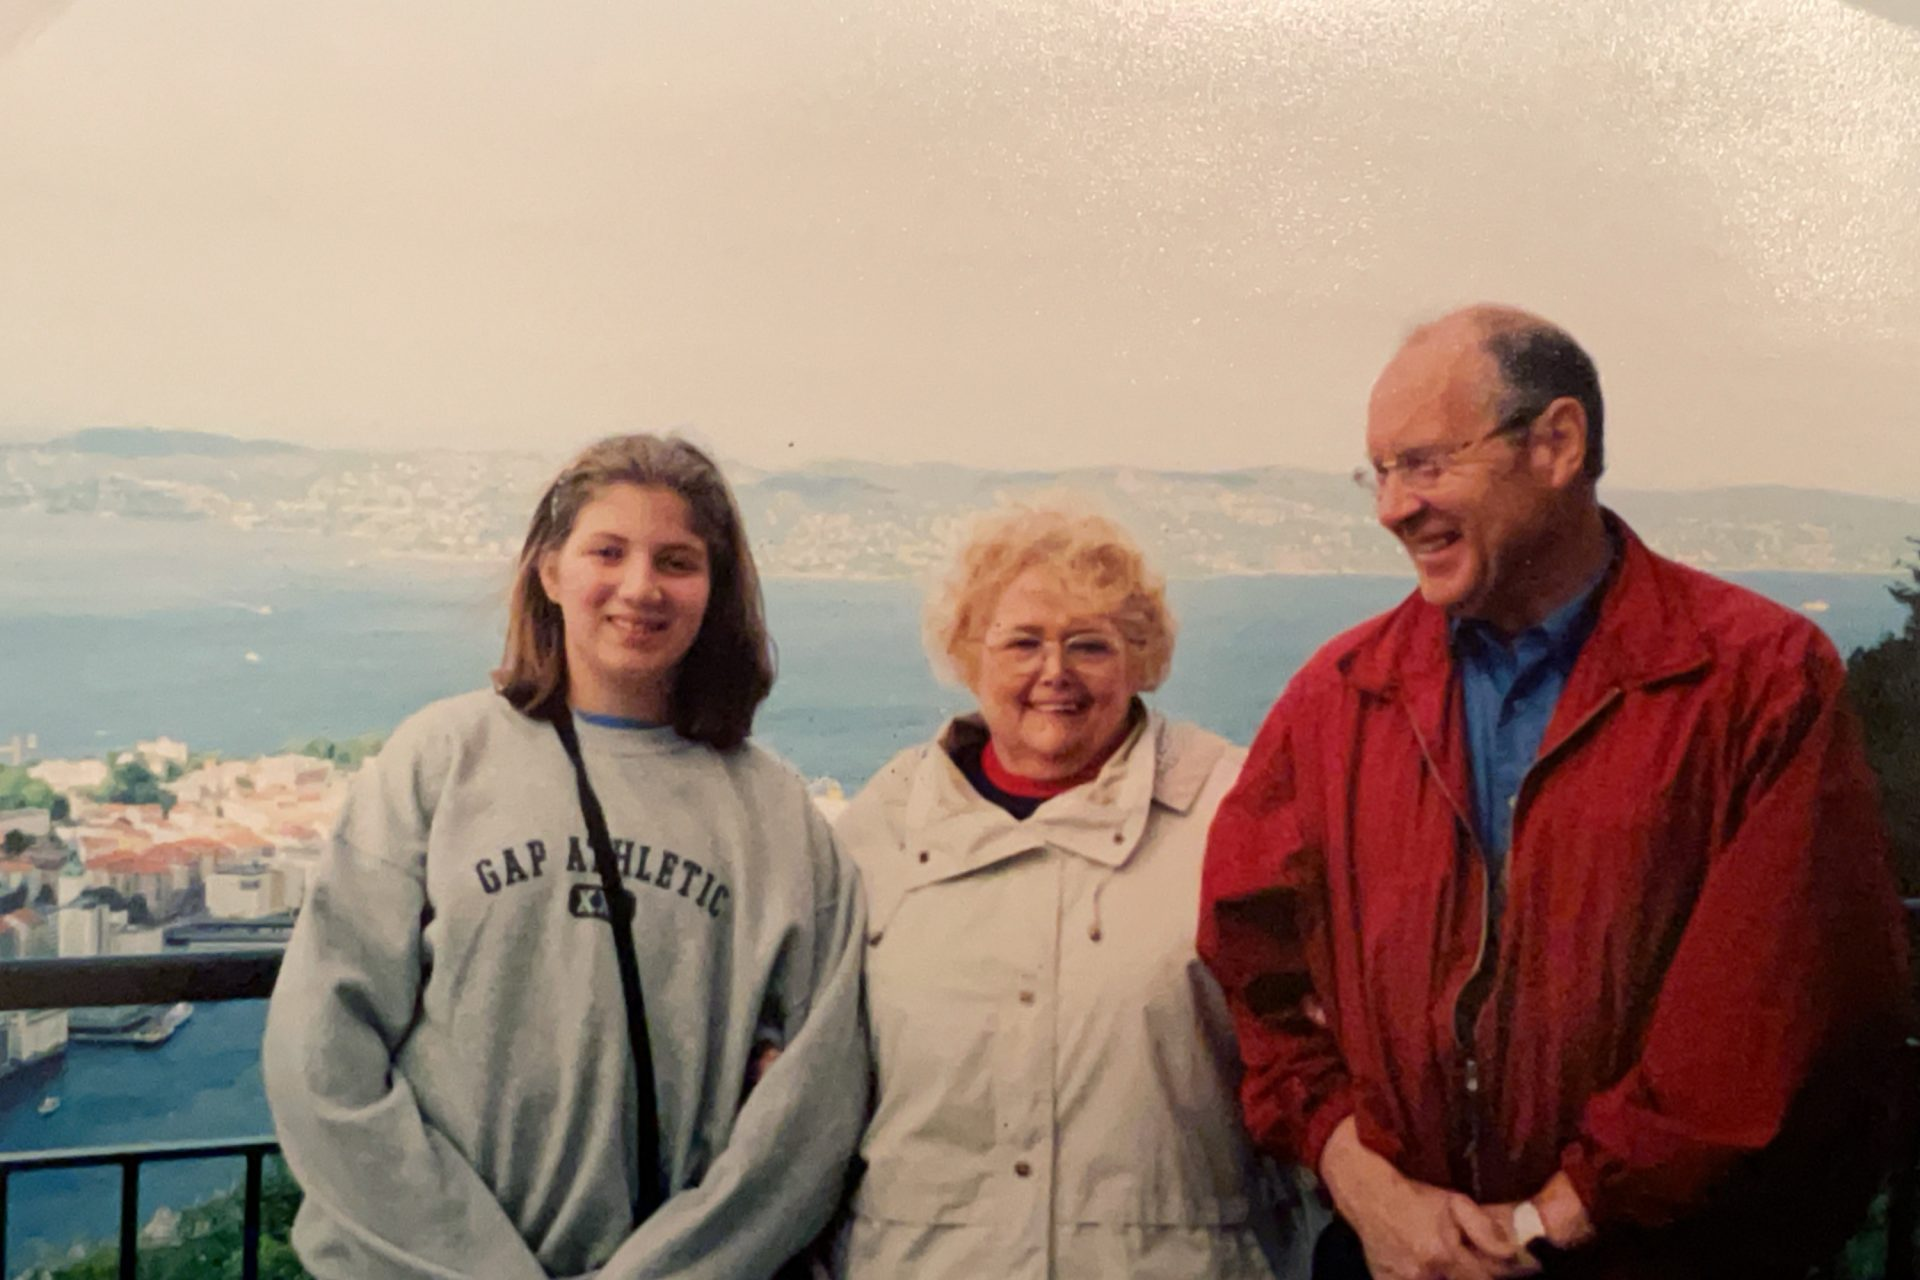 Grandma, our cousin, and myself in Bergen, Norway. I am so fortunate to have had this amazing experience with her and Pappy.